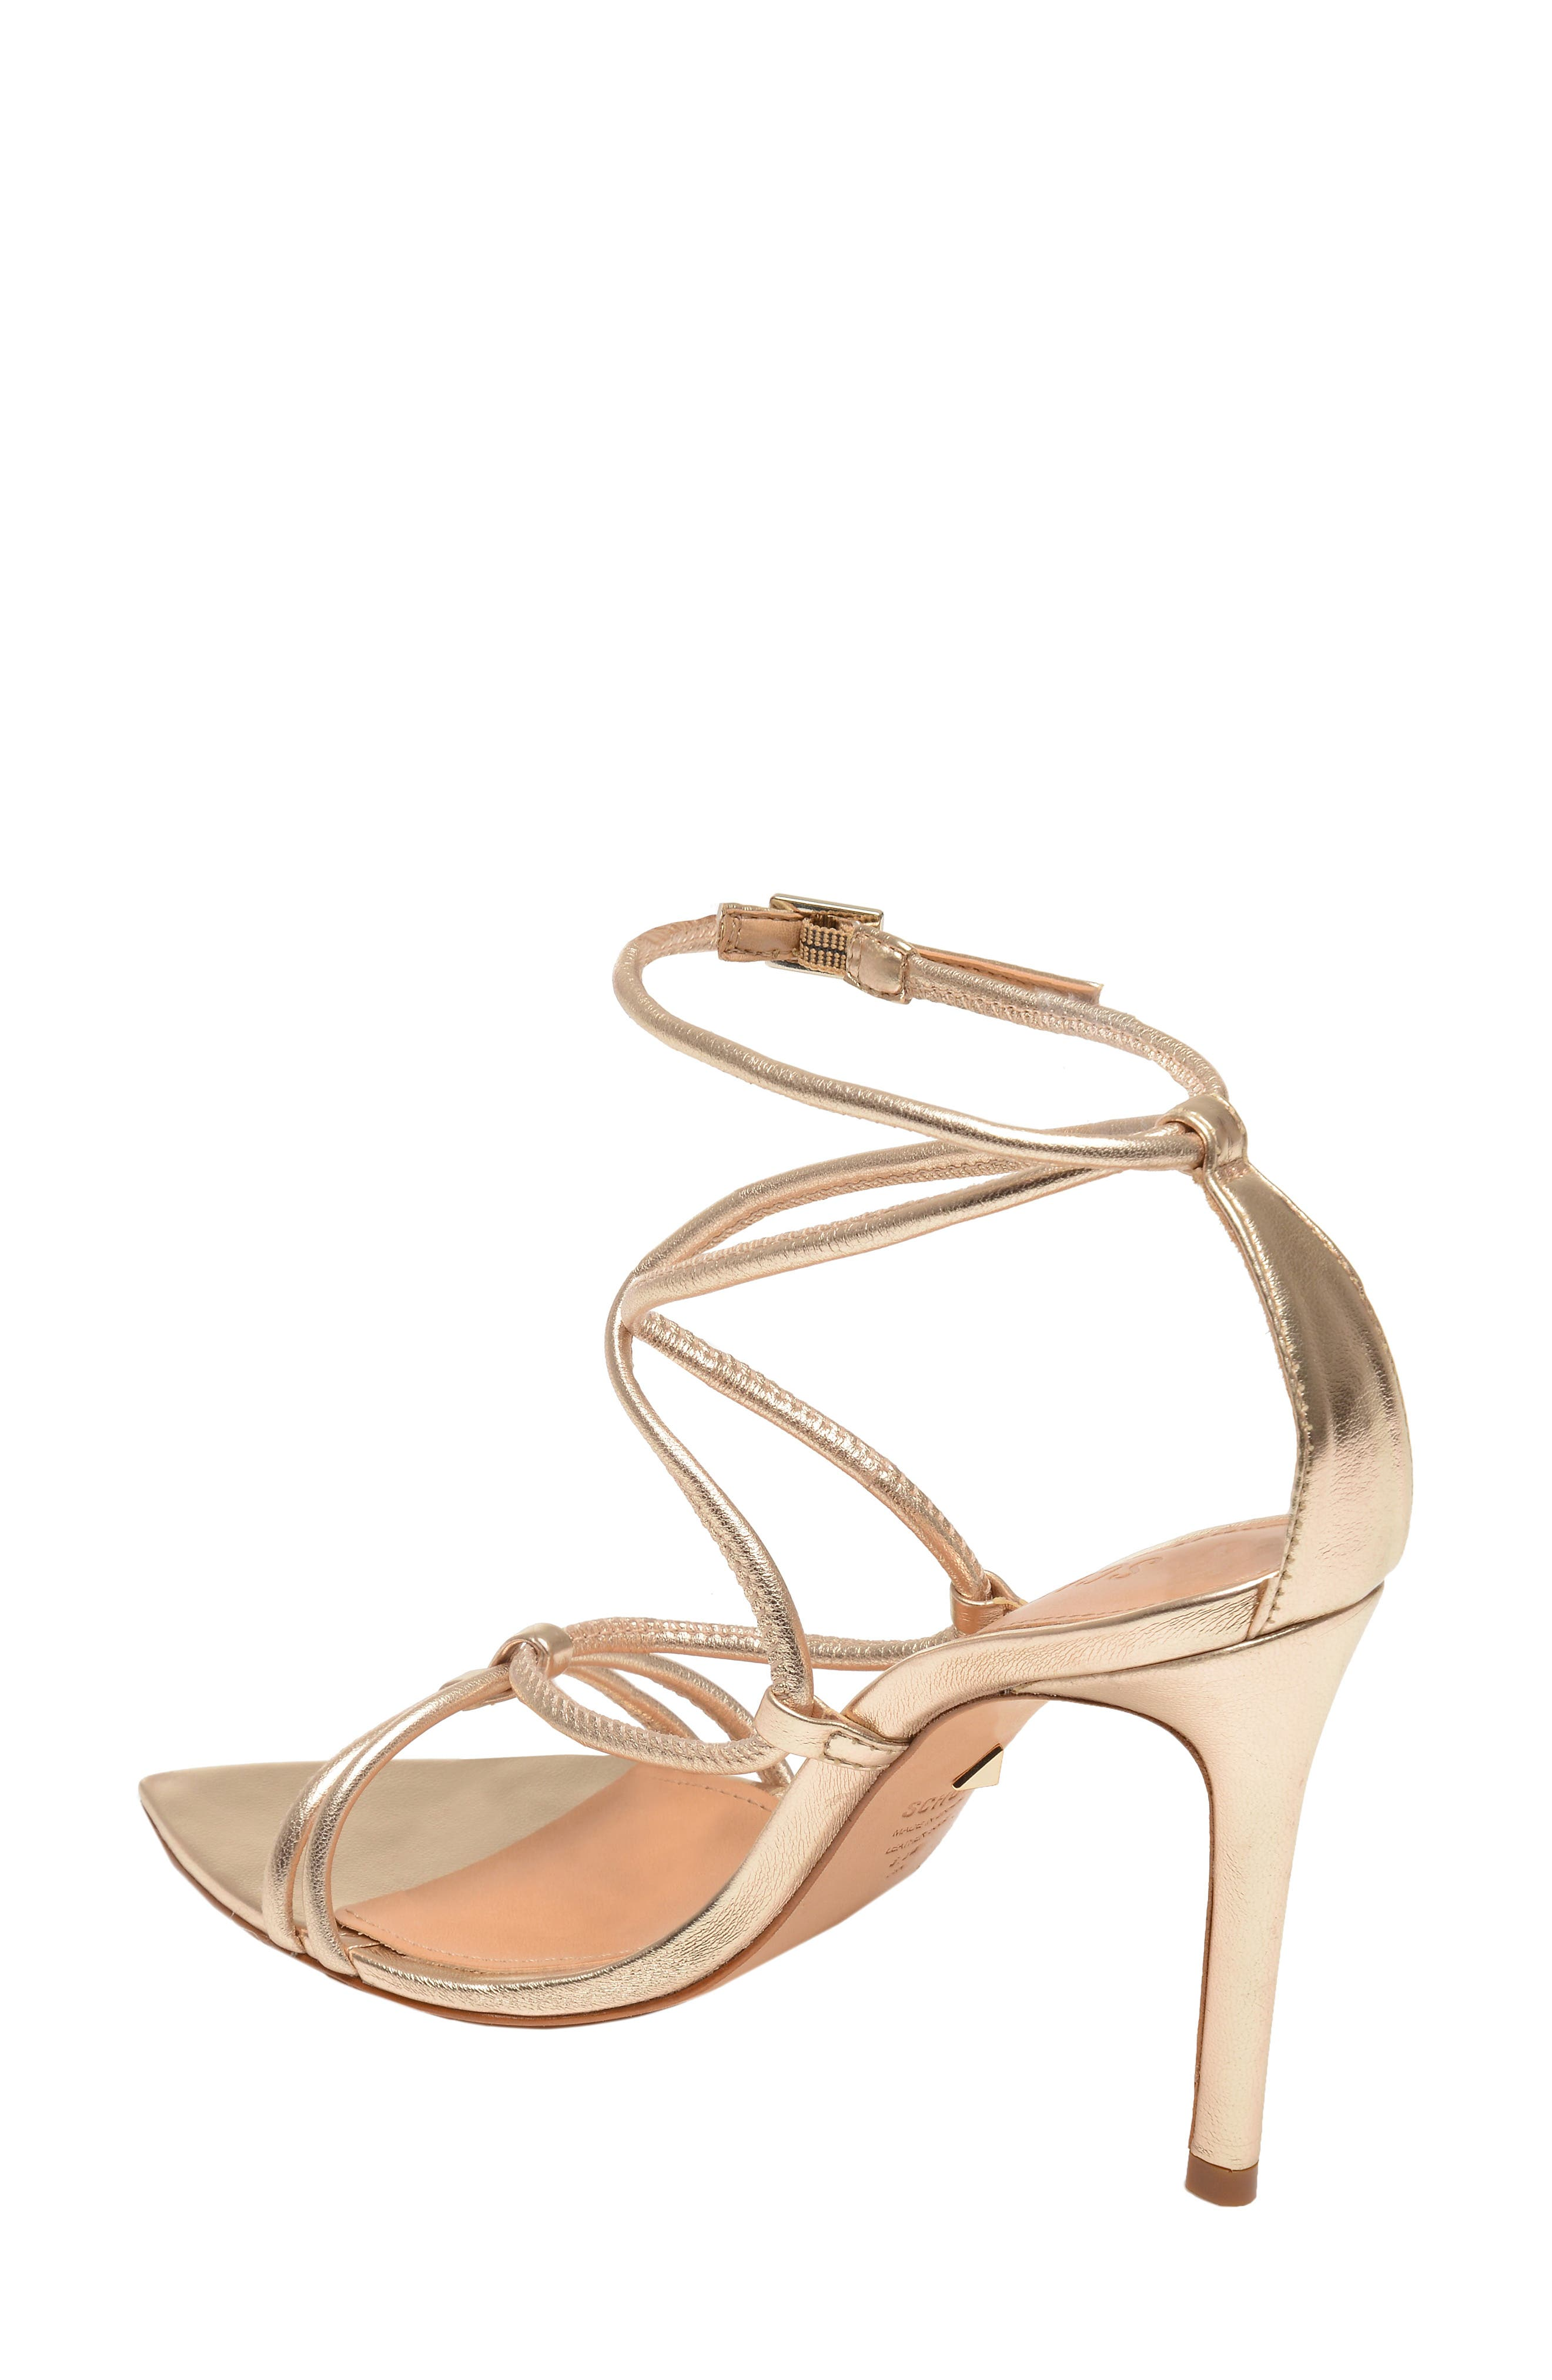 Evellyn Strappy Sandal,                             Alternate thumbnail 2, color,                             PLATINA